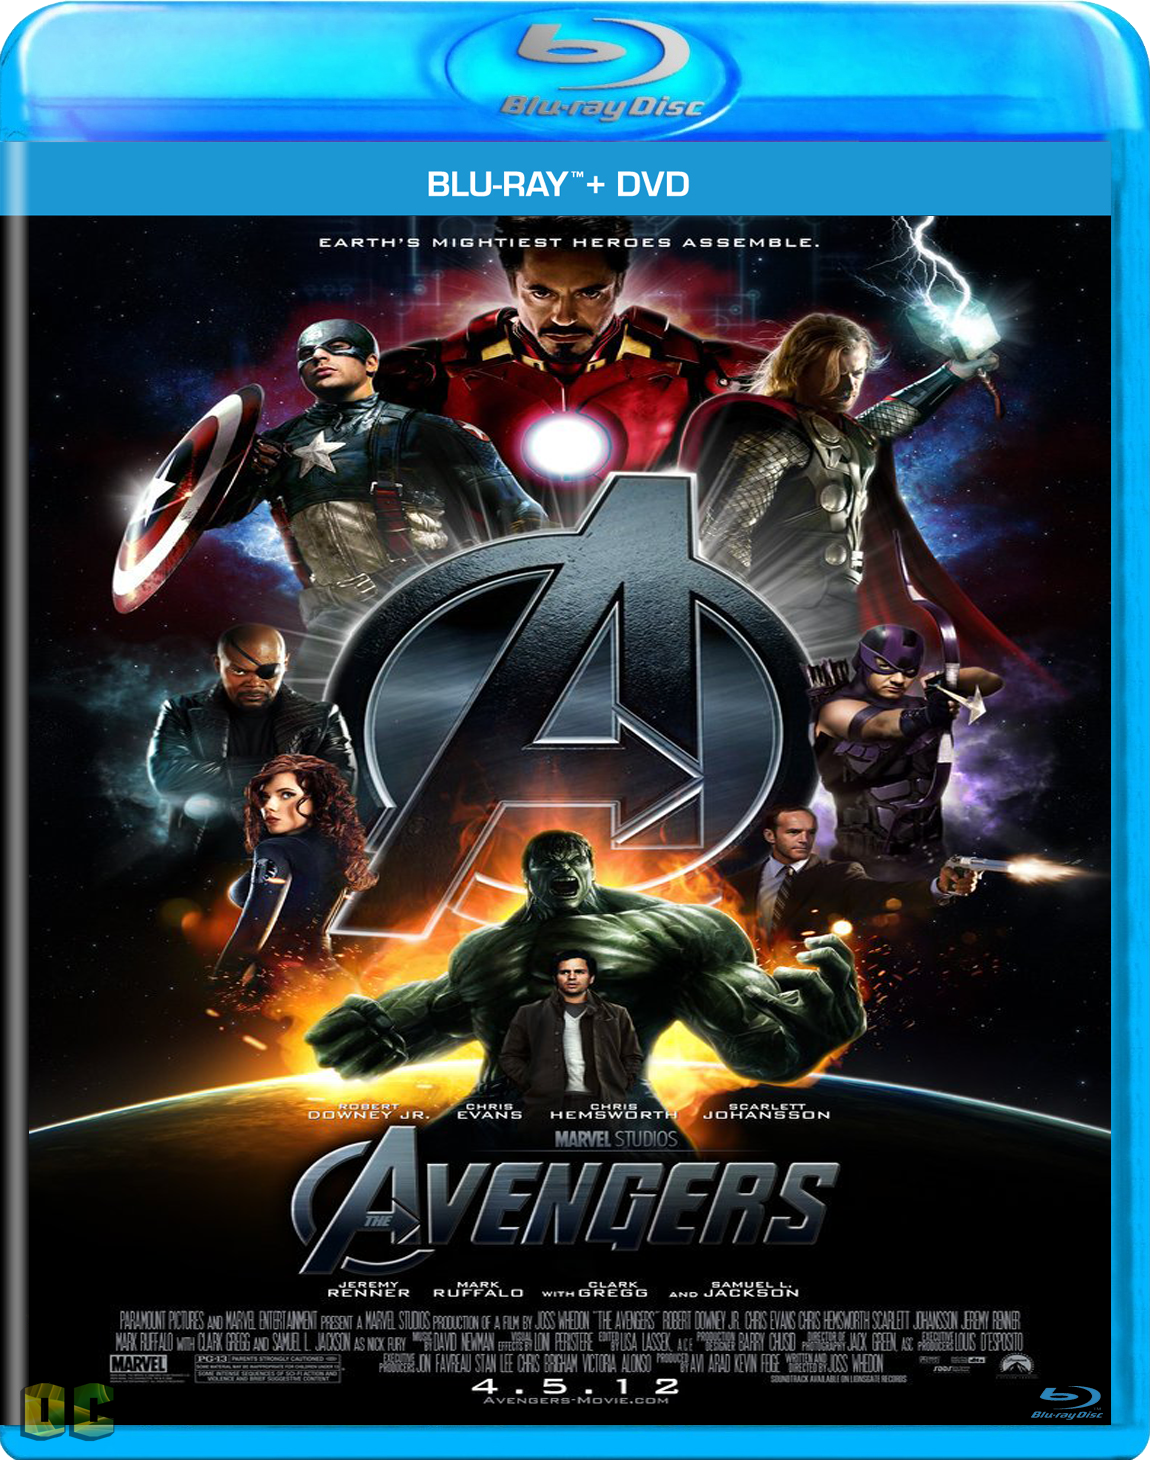 The Avengers: Latest Bluray & HD Covers: The Avengers (2012) Hollywood